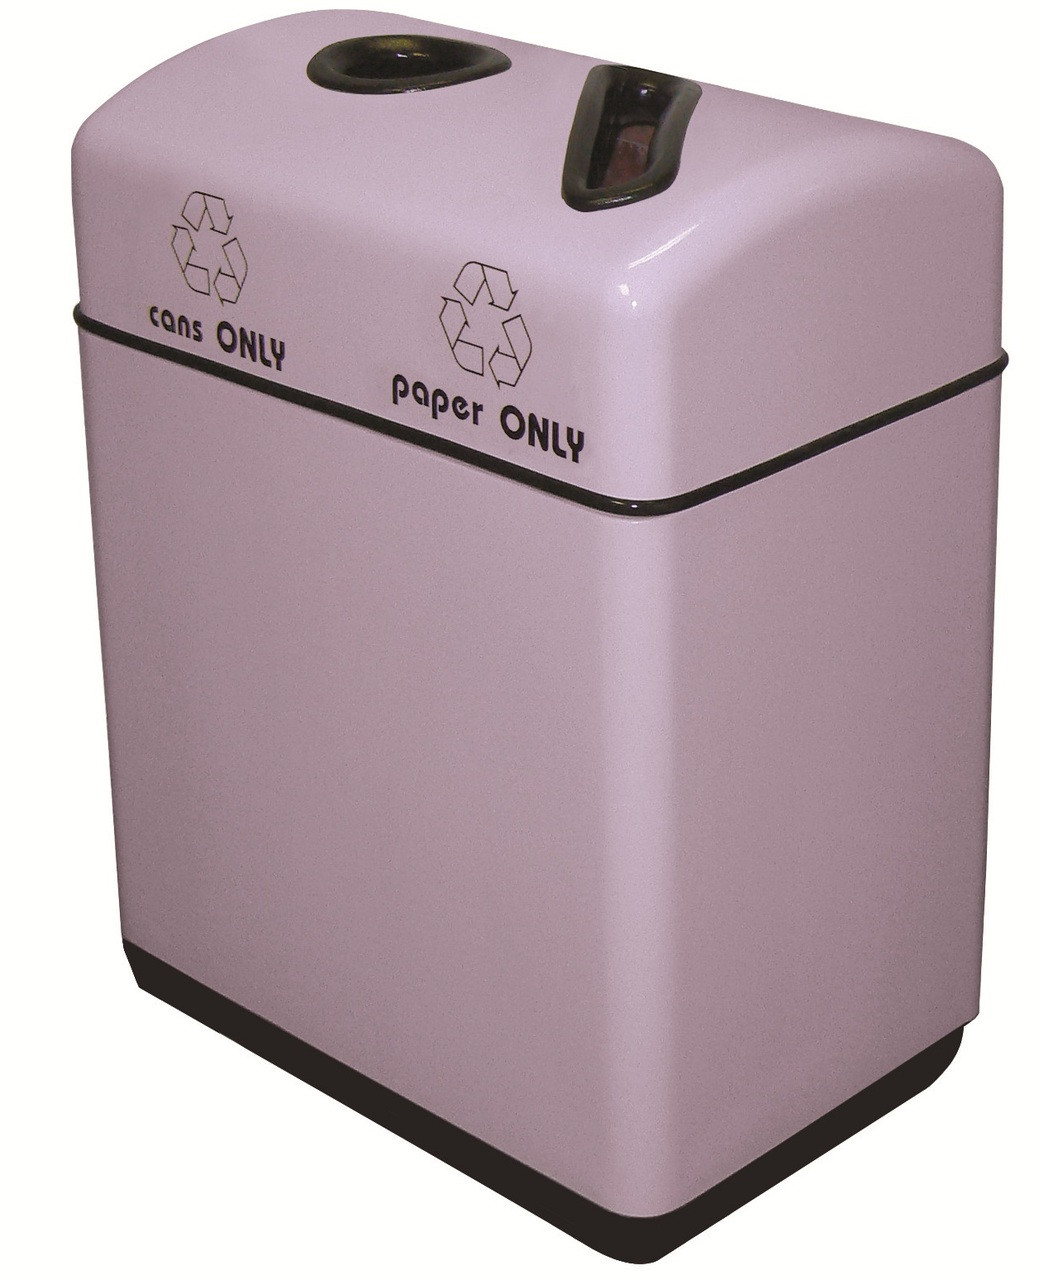 22 Gallon Fiberglass 2 Opening Recycle Bin with Plastic Liner 11RR-241631 (35 Colors)